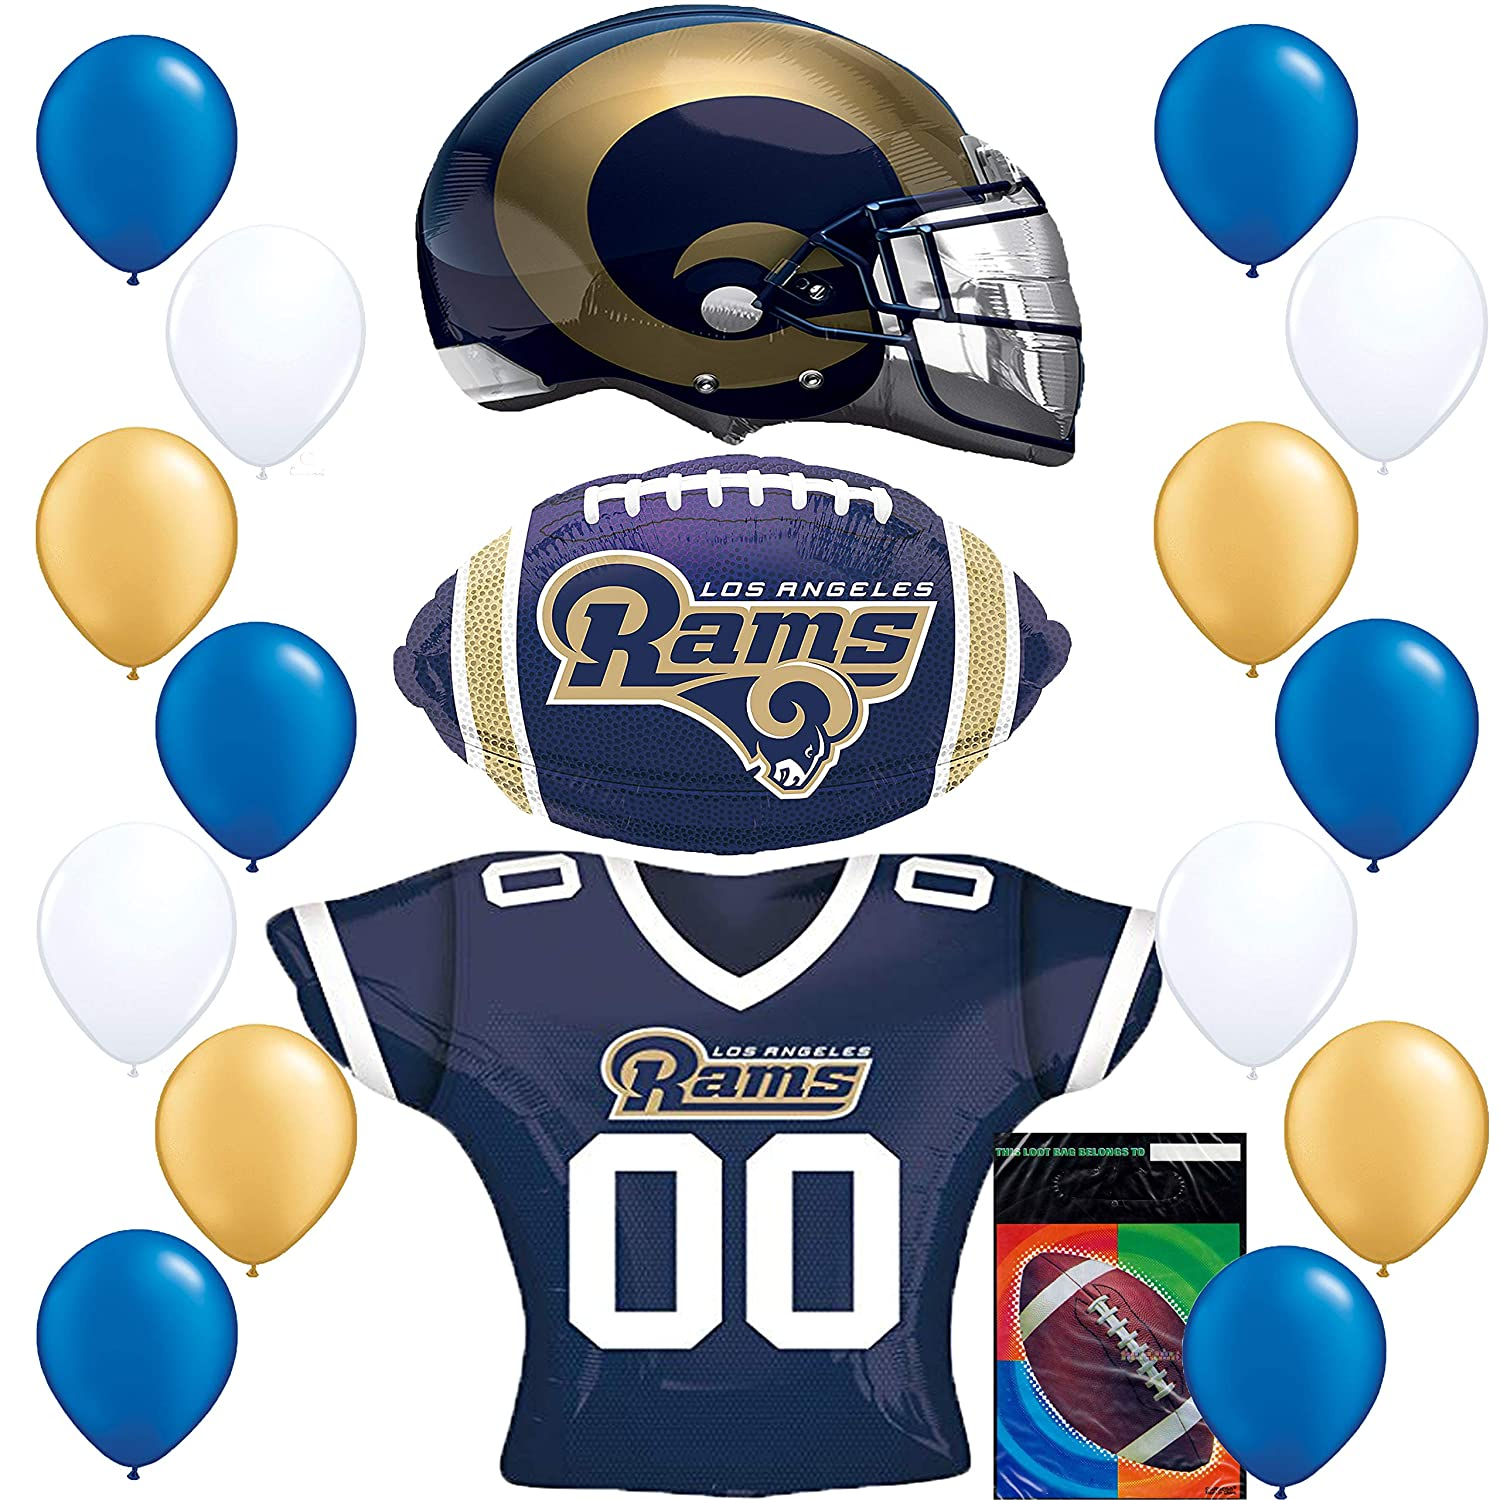 Los Angeles Rams LA Football NFL Party Supplies Sports Team Helmet Jersey Balloon Decoration Bundle with Foot Ball Treat Bags RAPIDNGUARANTEED